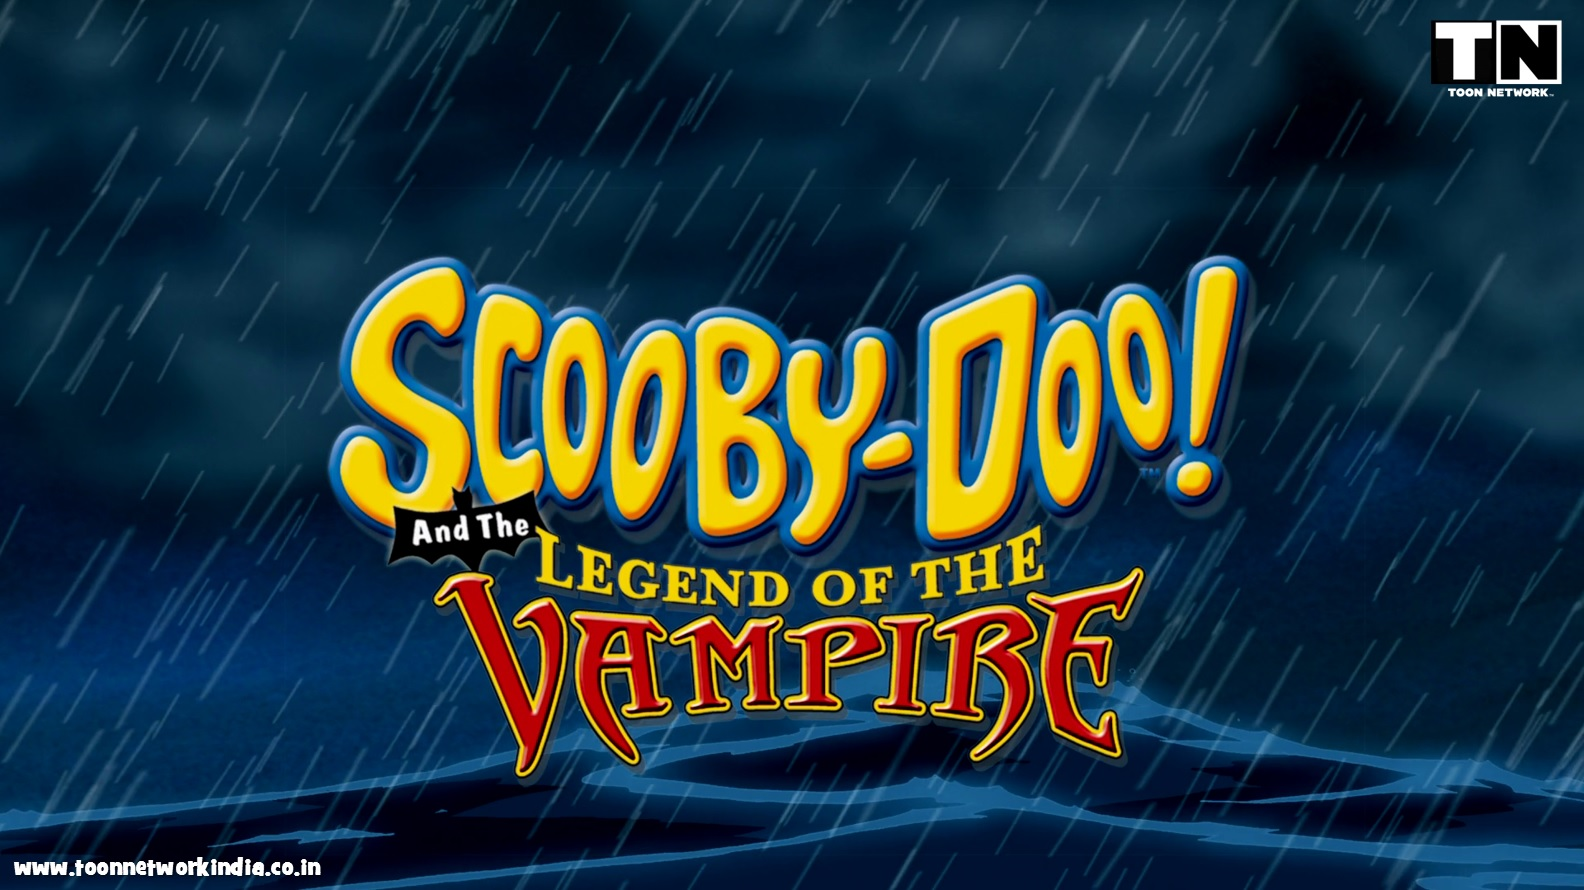 Scooby doo and the legend of the vampire hindi full movie full hd